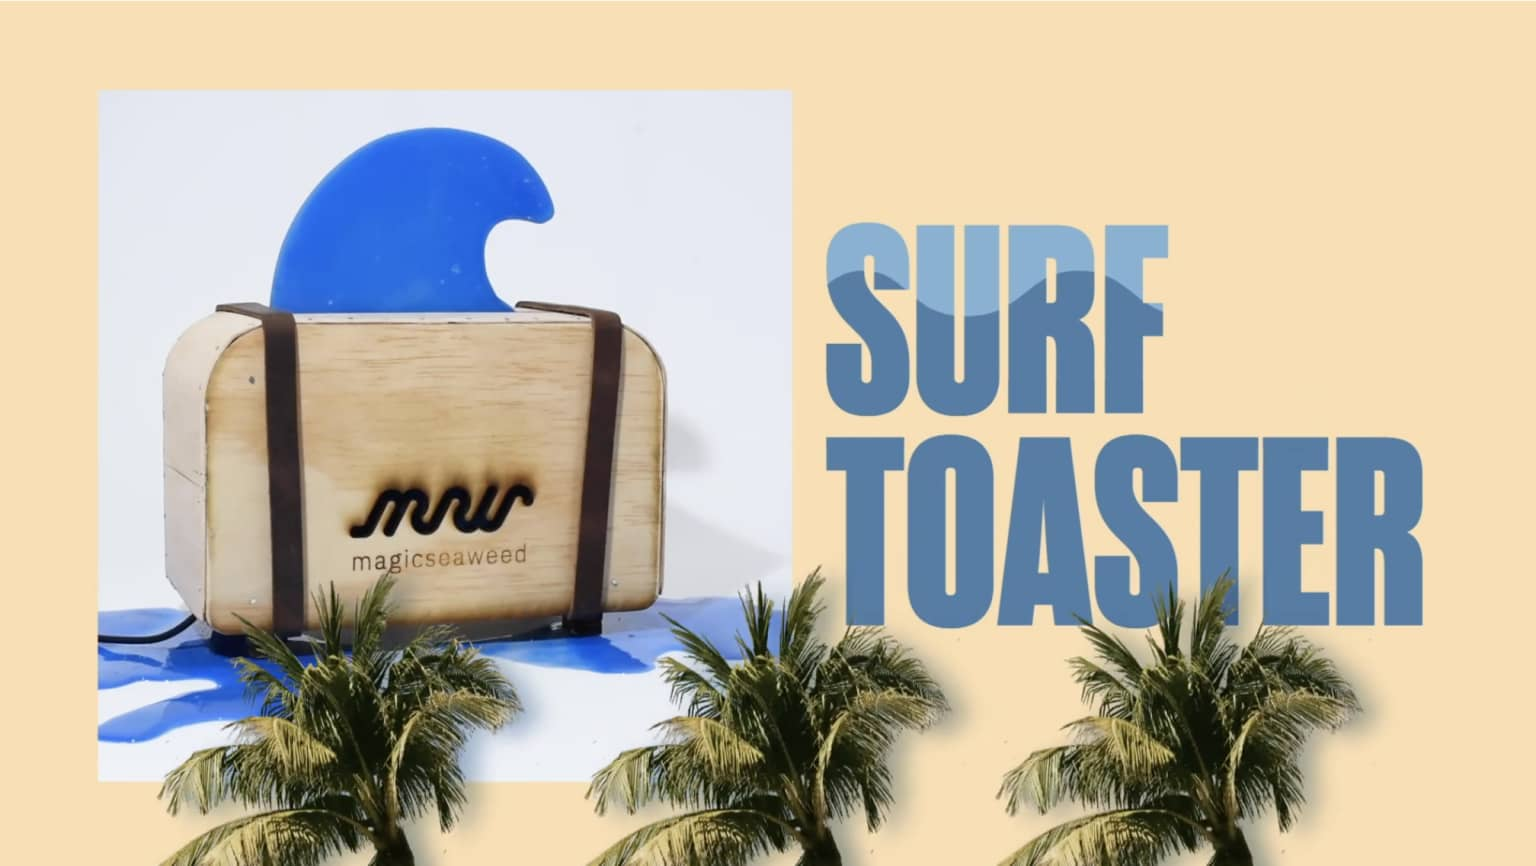 Magic seaweed surf toaster